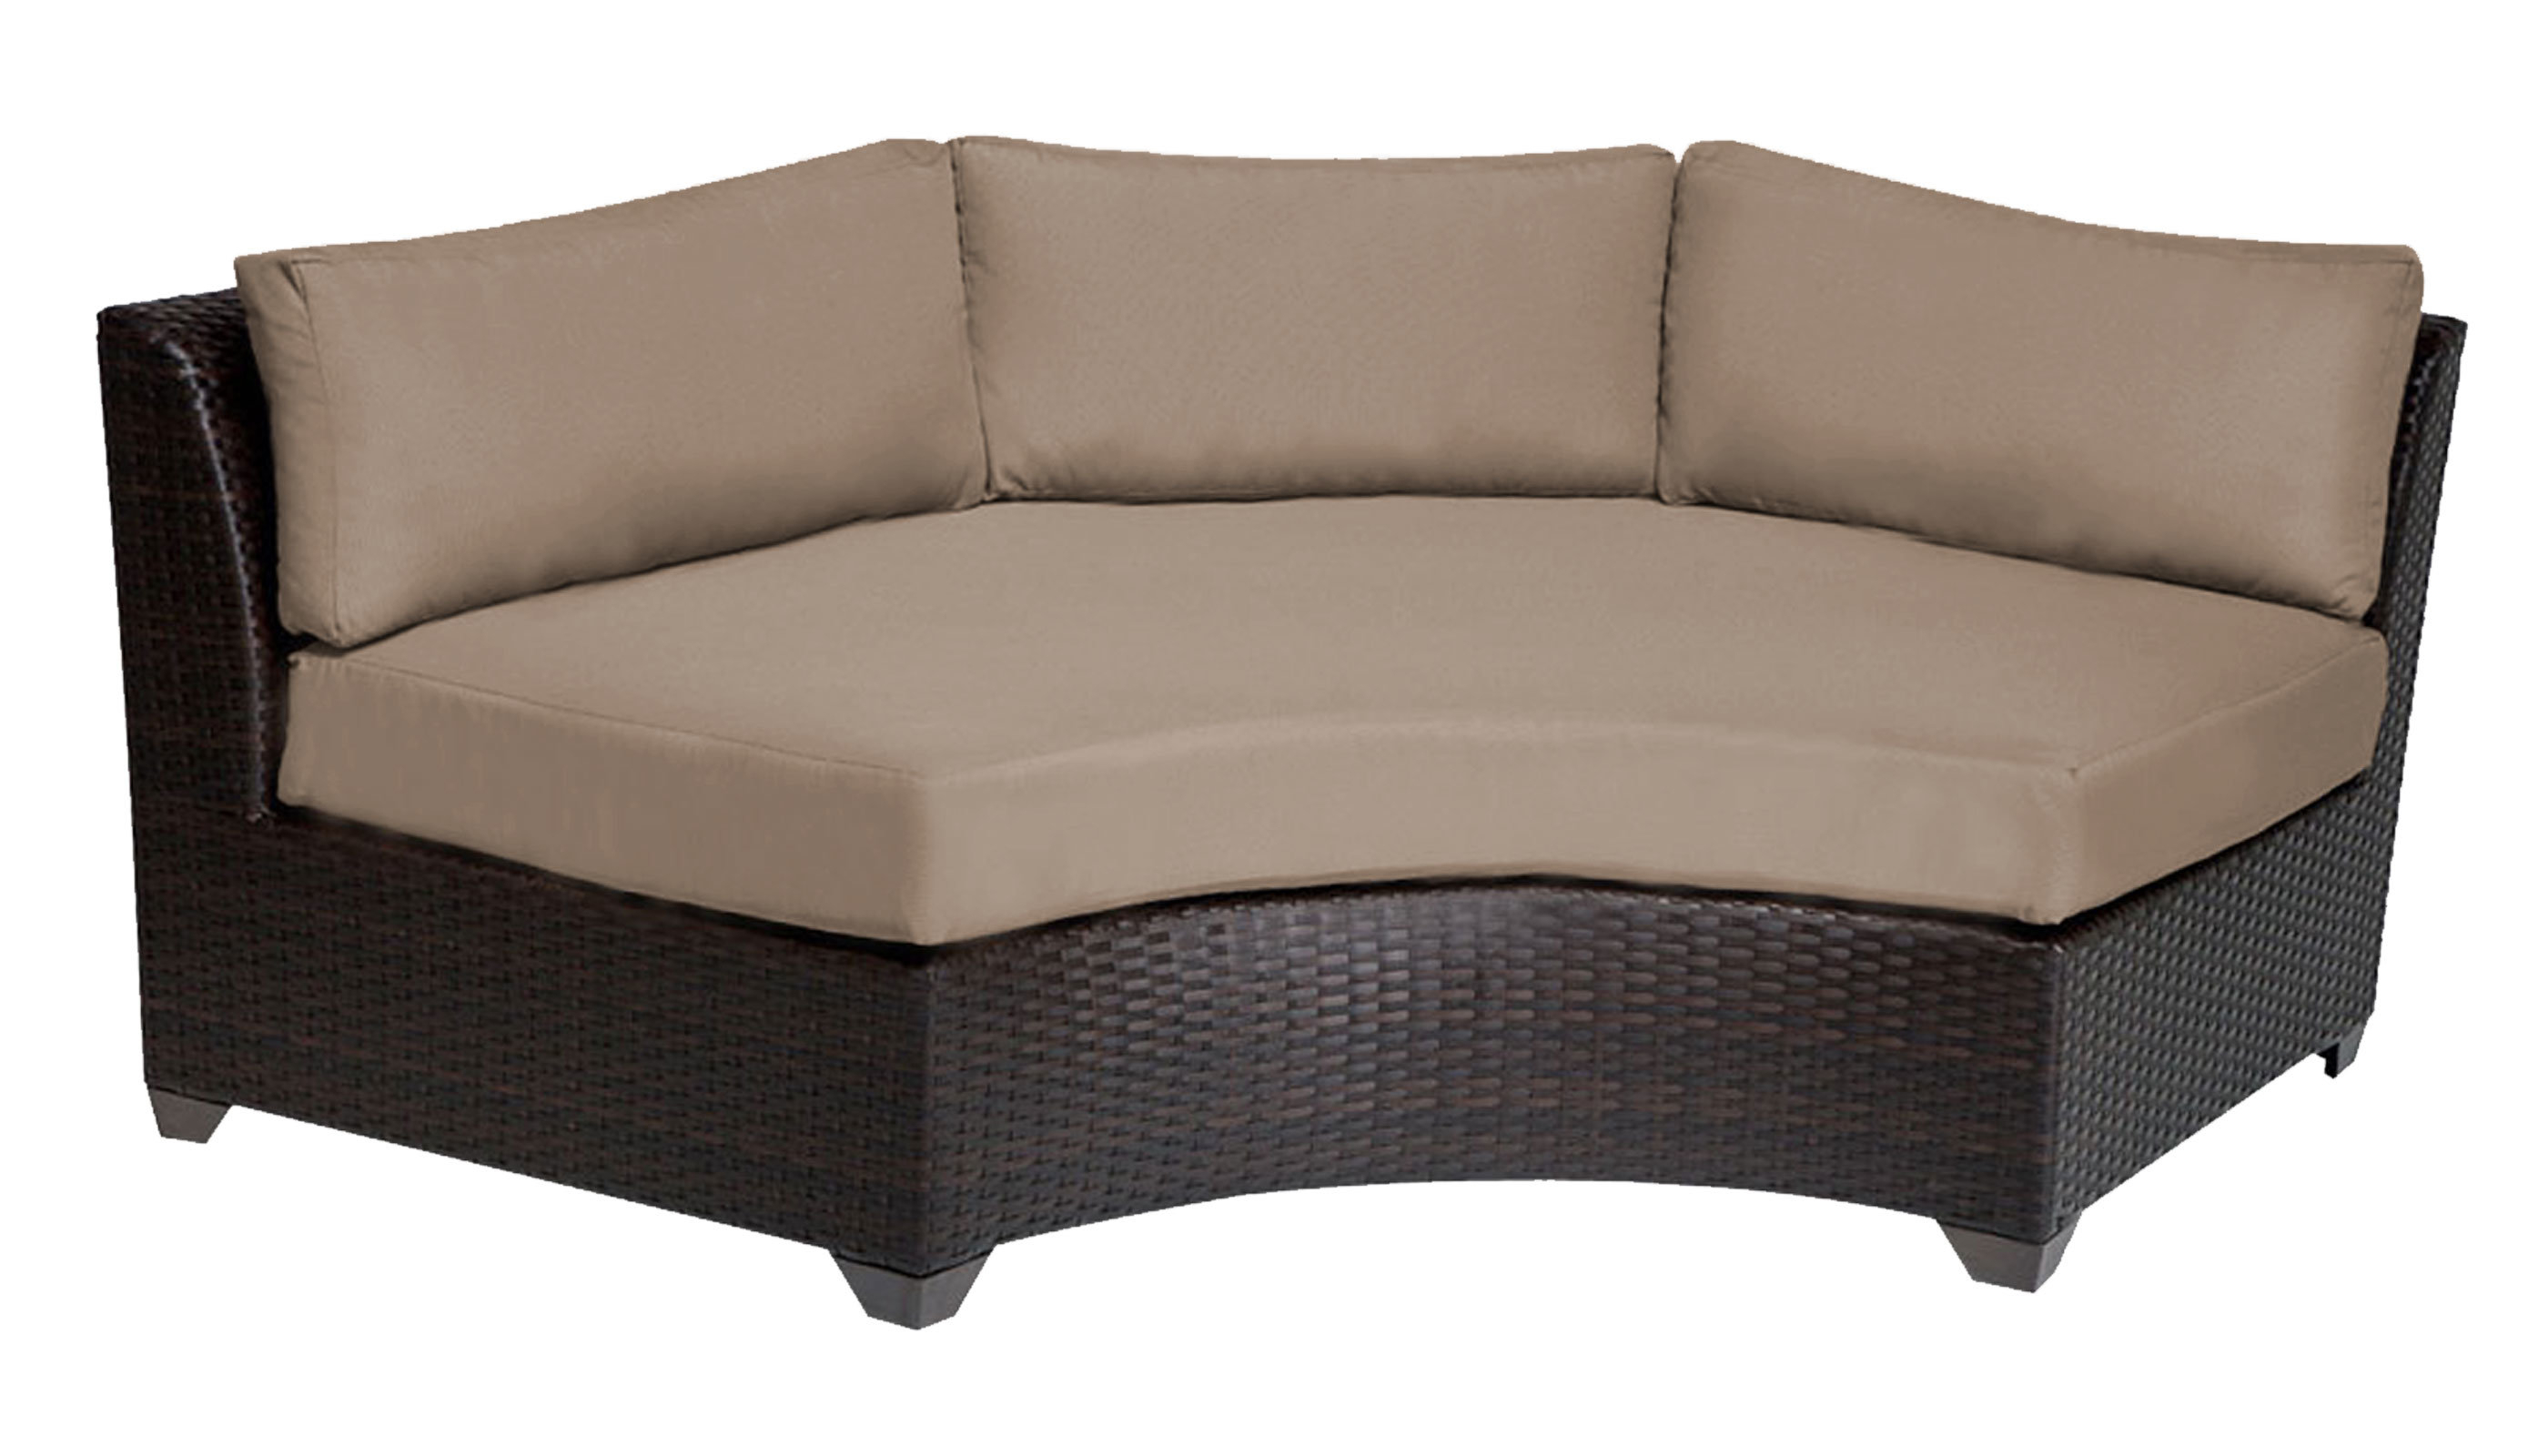 Best And Newest Camak Patio Sofa With Cushions With Regard To Camak Patio Loveseats With Cushions (View 6 of 20)